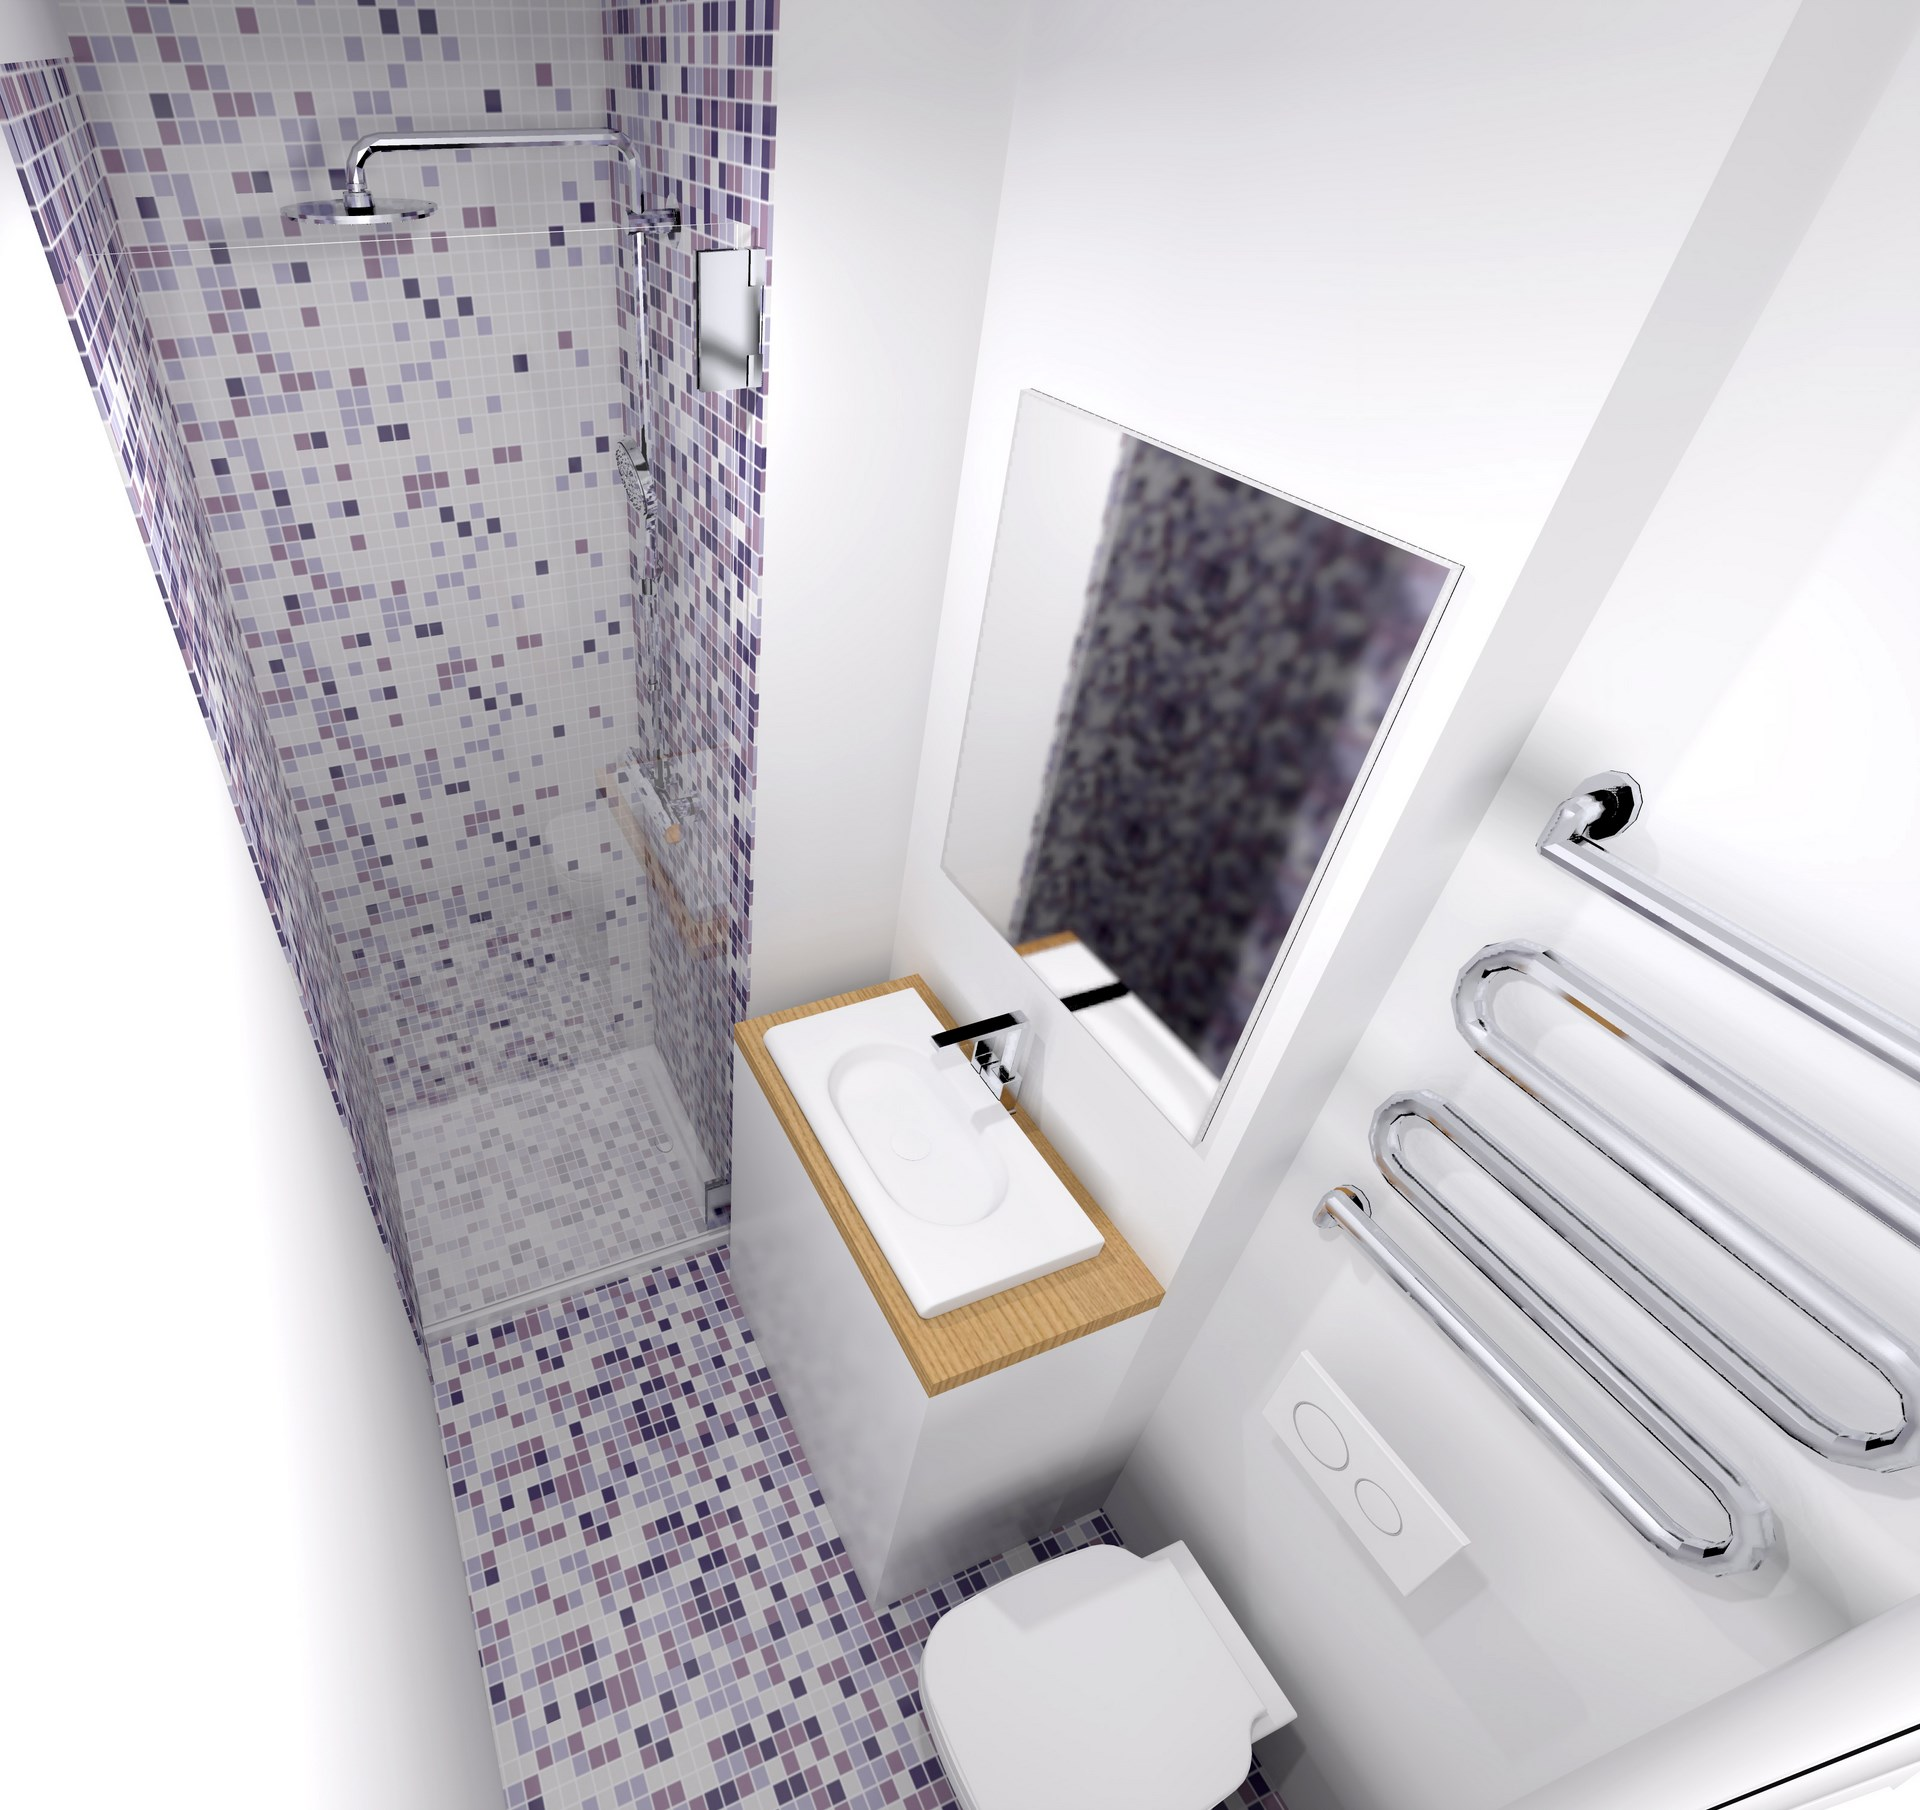 Appartement passage du grand cerf paris studio transform for Salle de bain optimisee